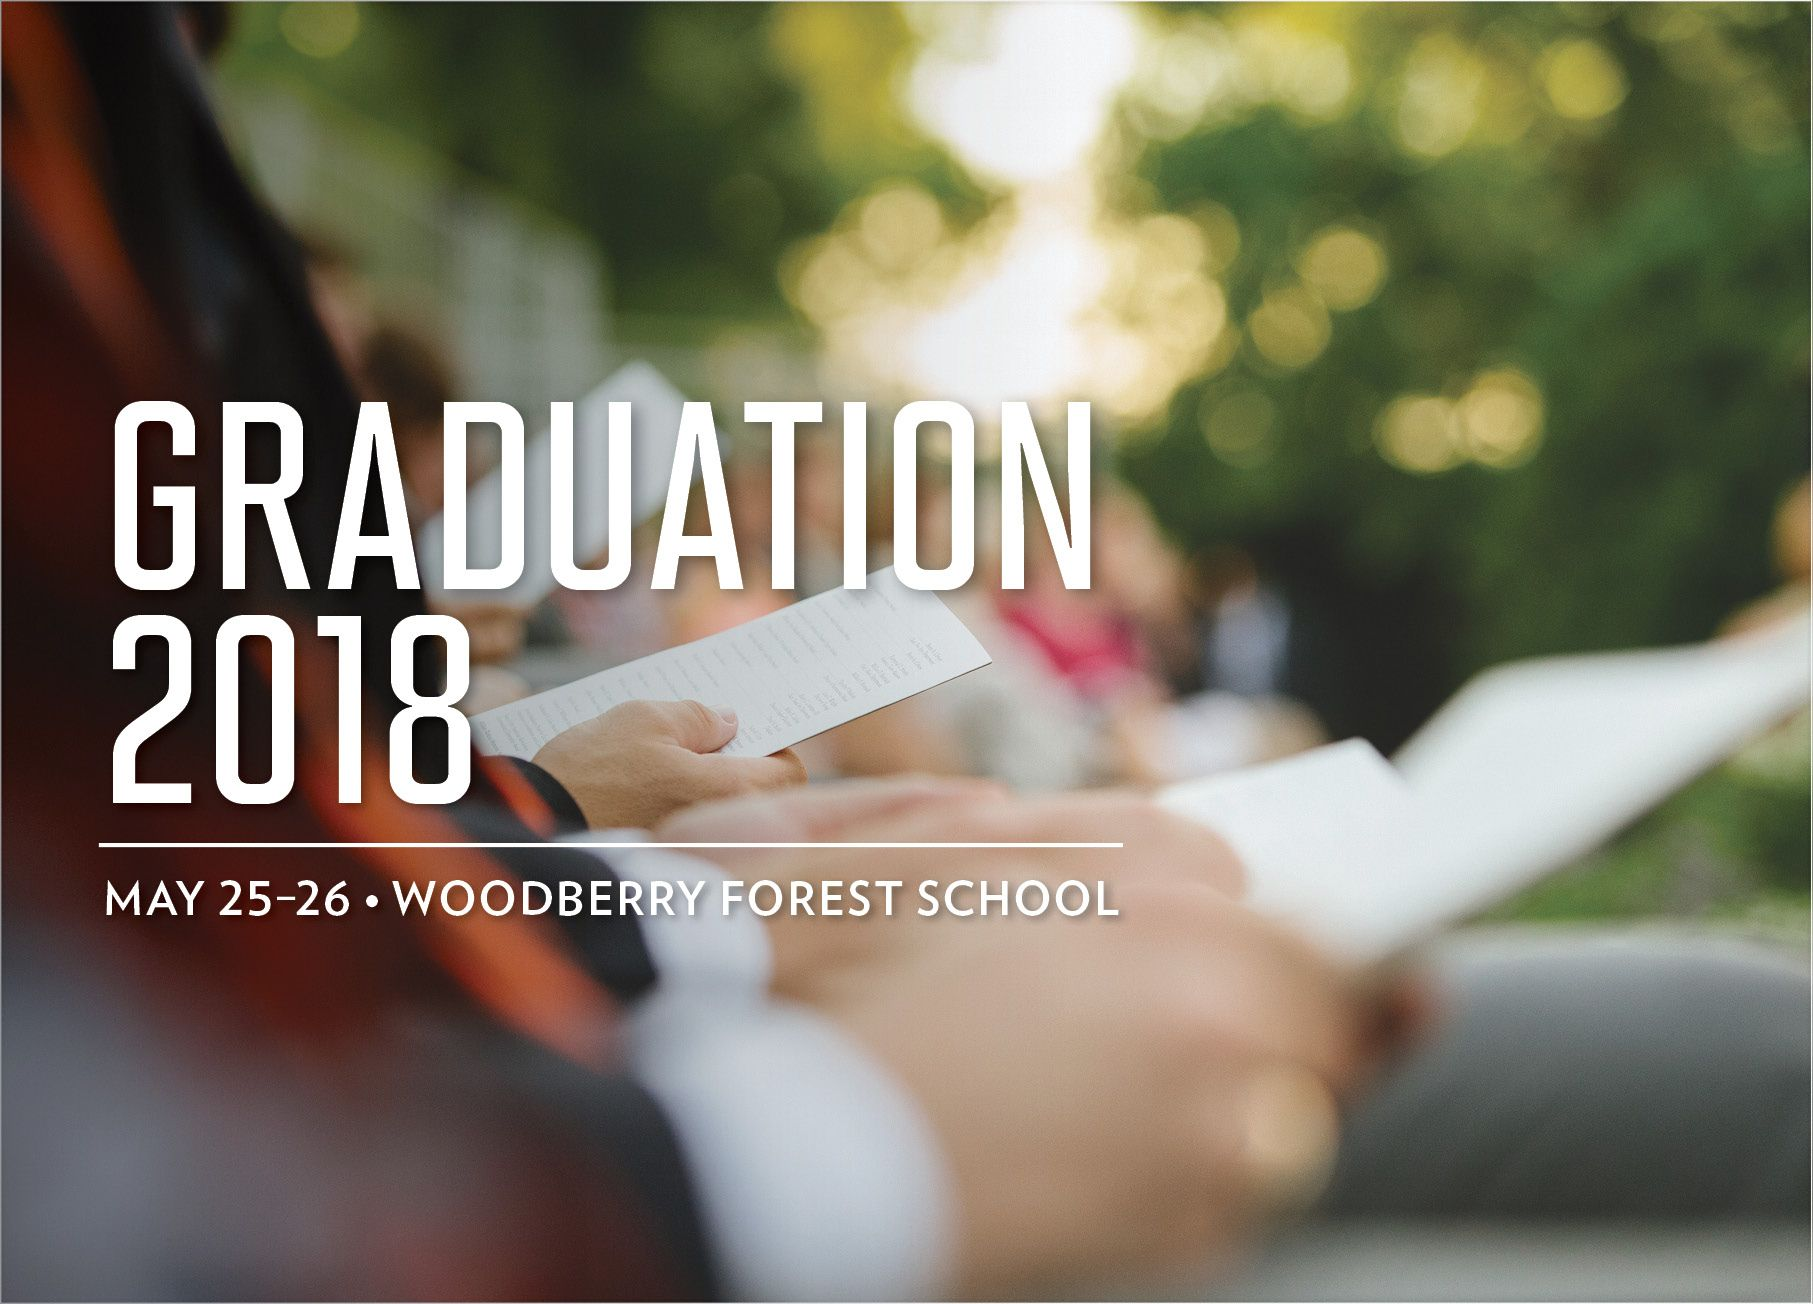 Graduation Reflection 2018